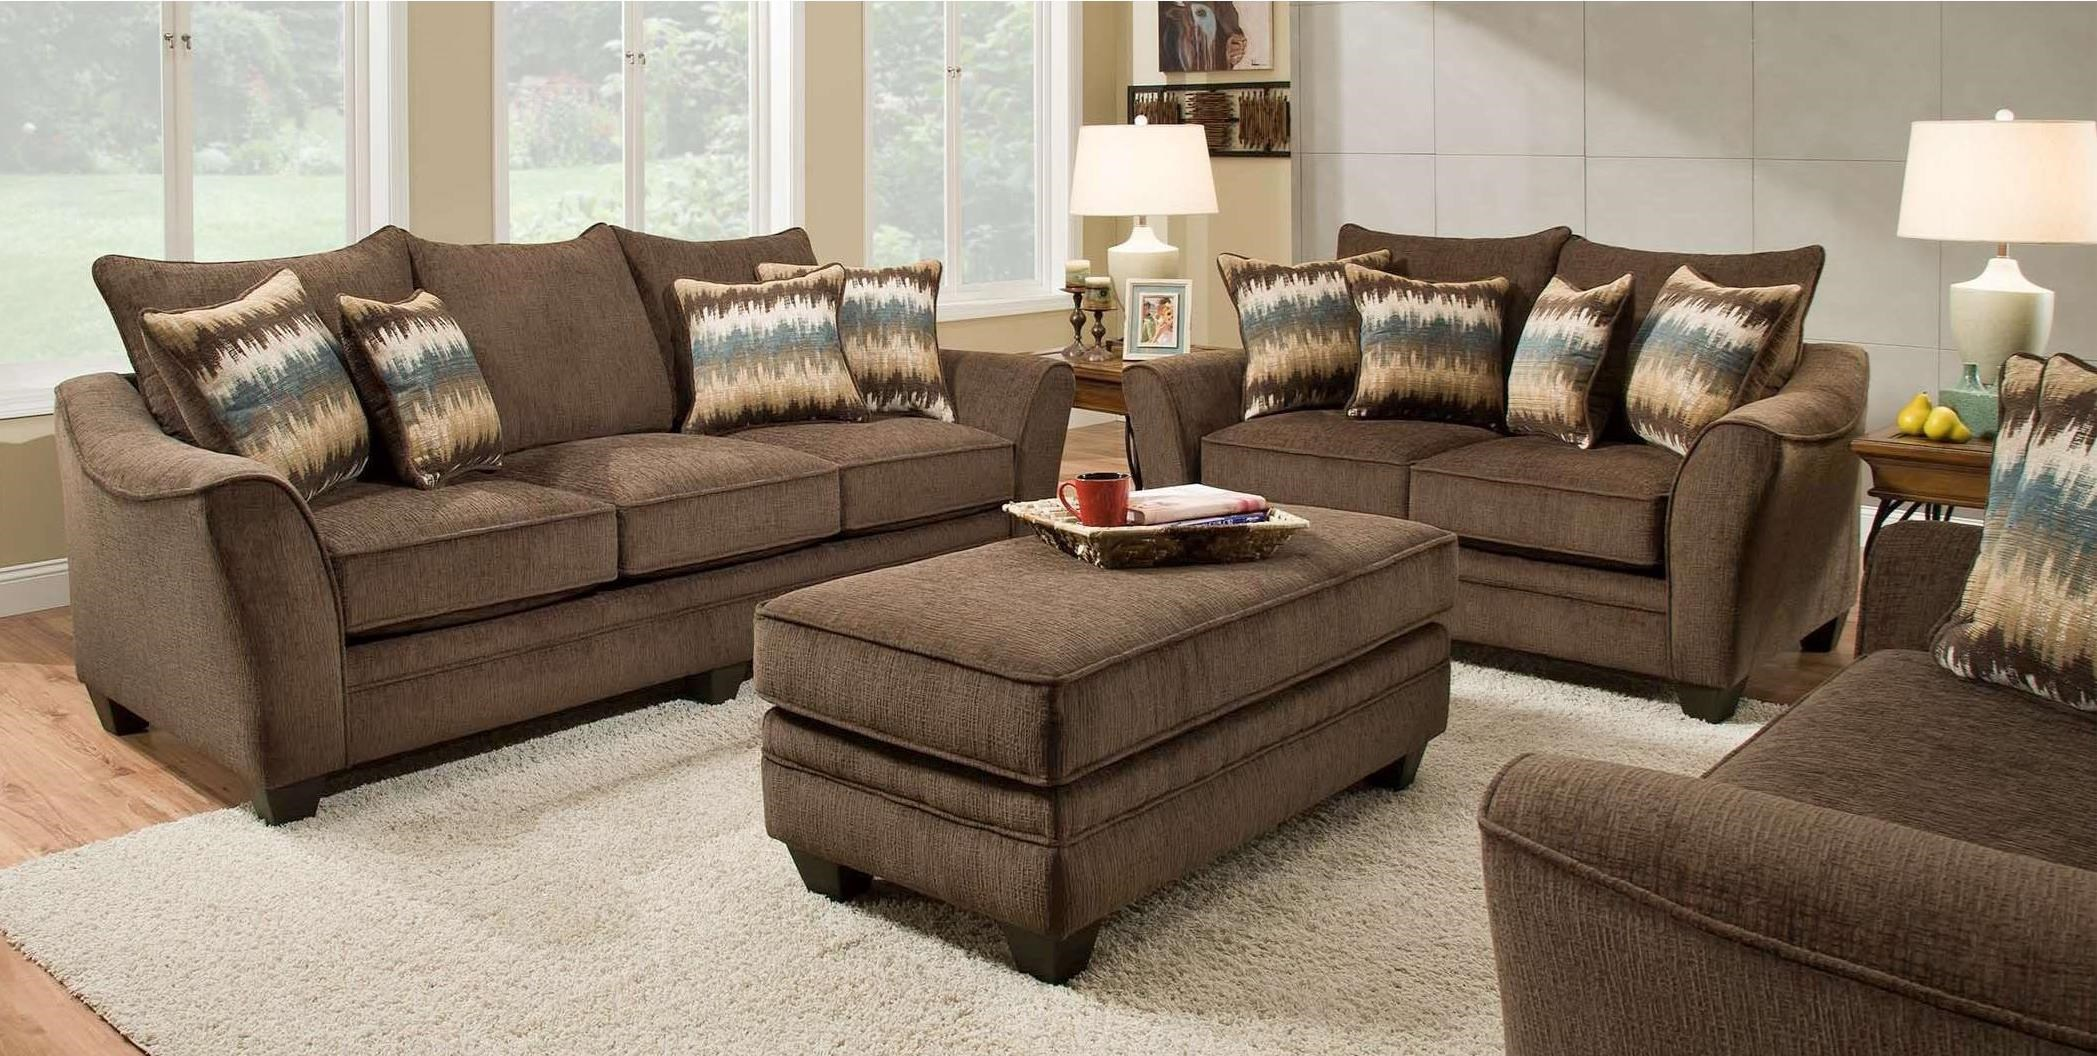 3850 Stationary Living Room Group by Peak Living at Prime Brothers Furniture